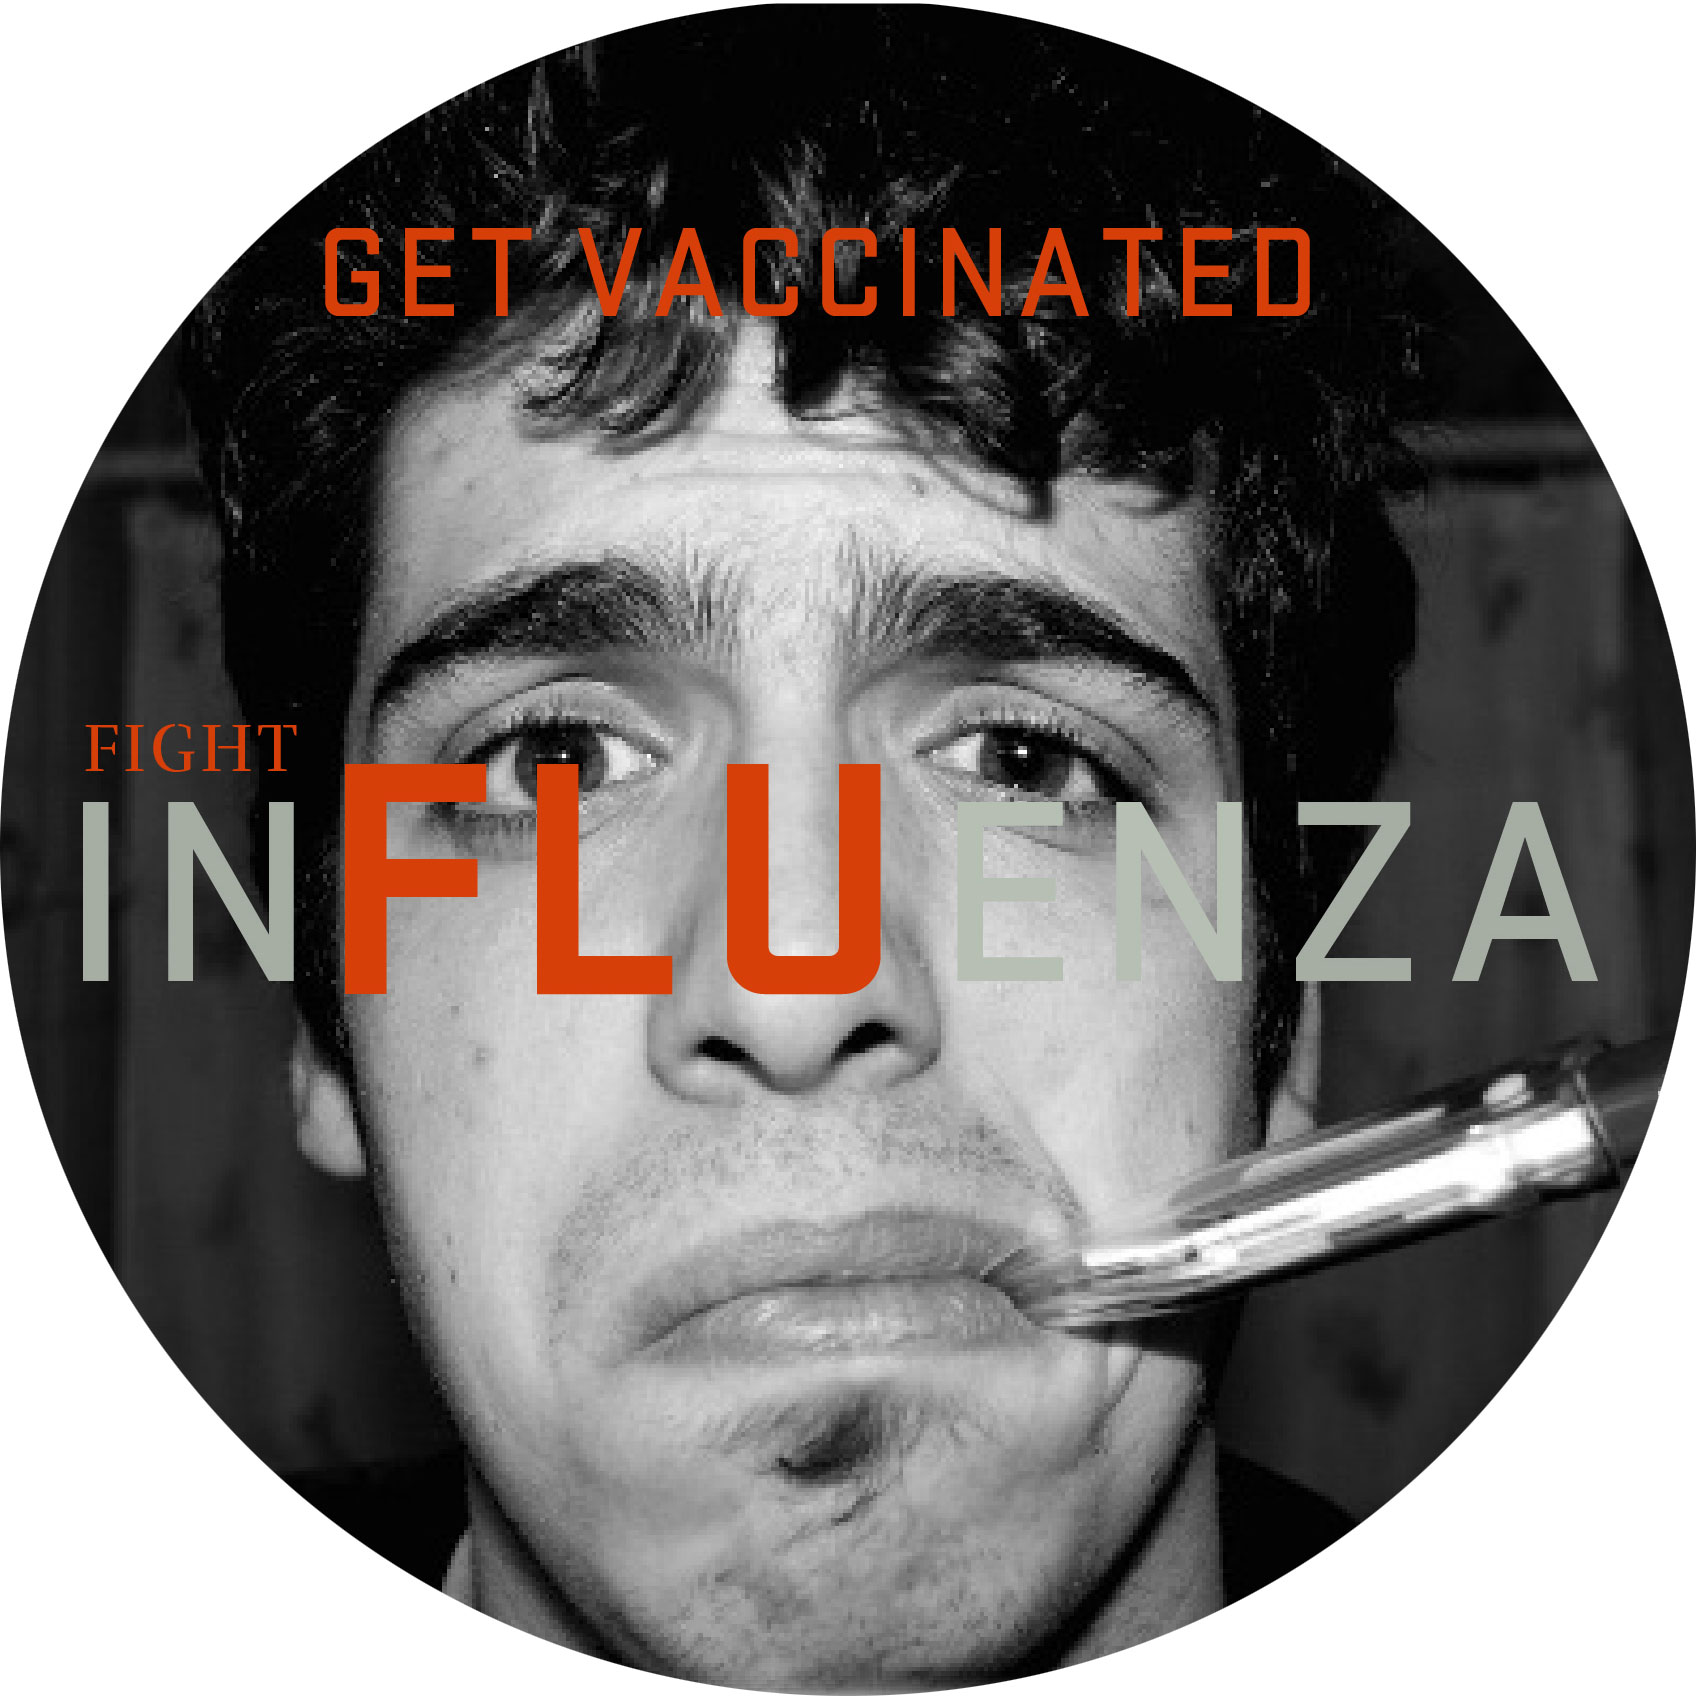 button that takes website visitors to our flu information page